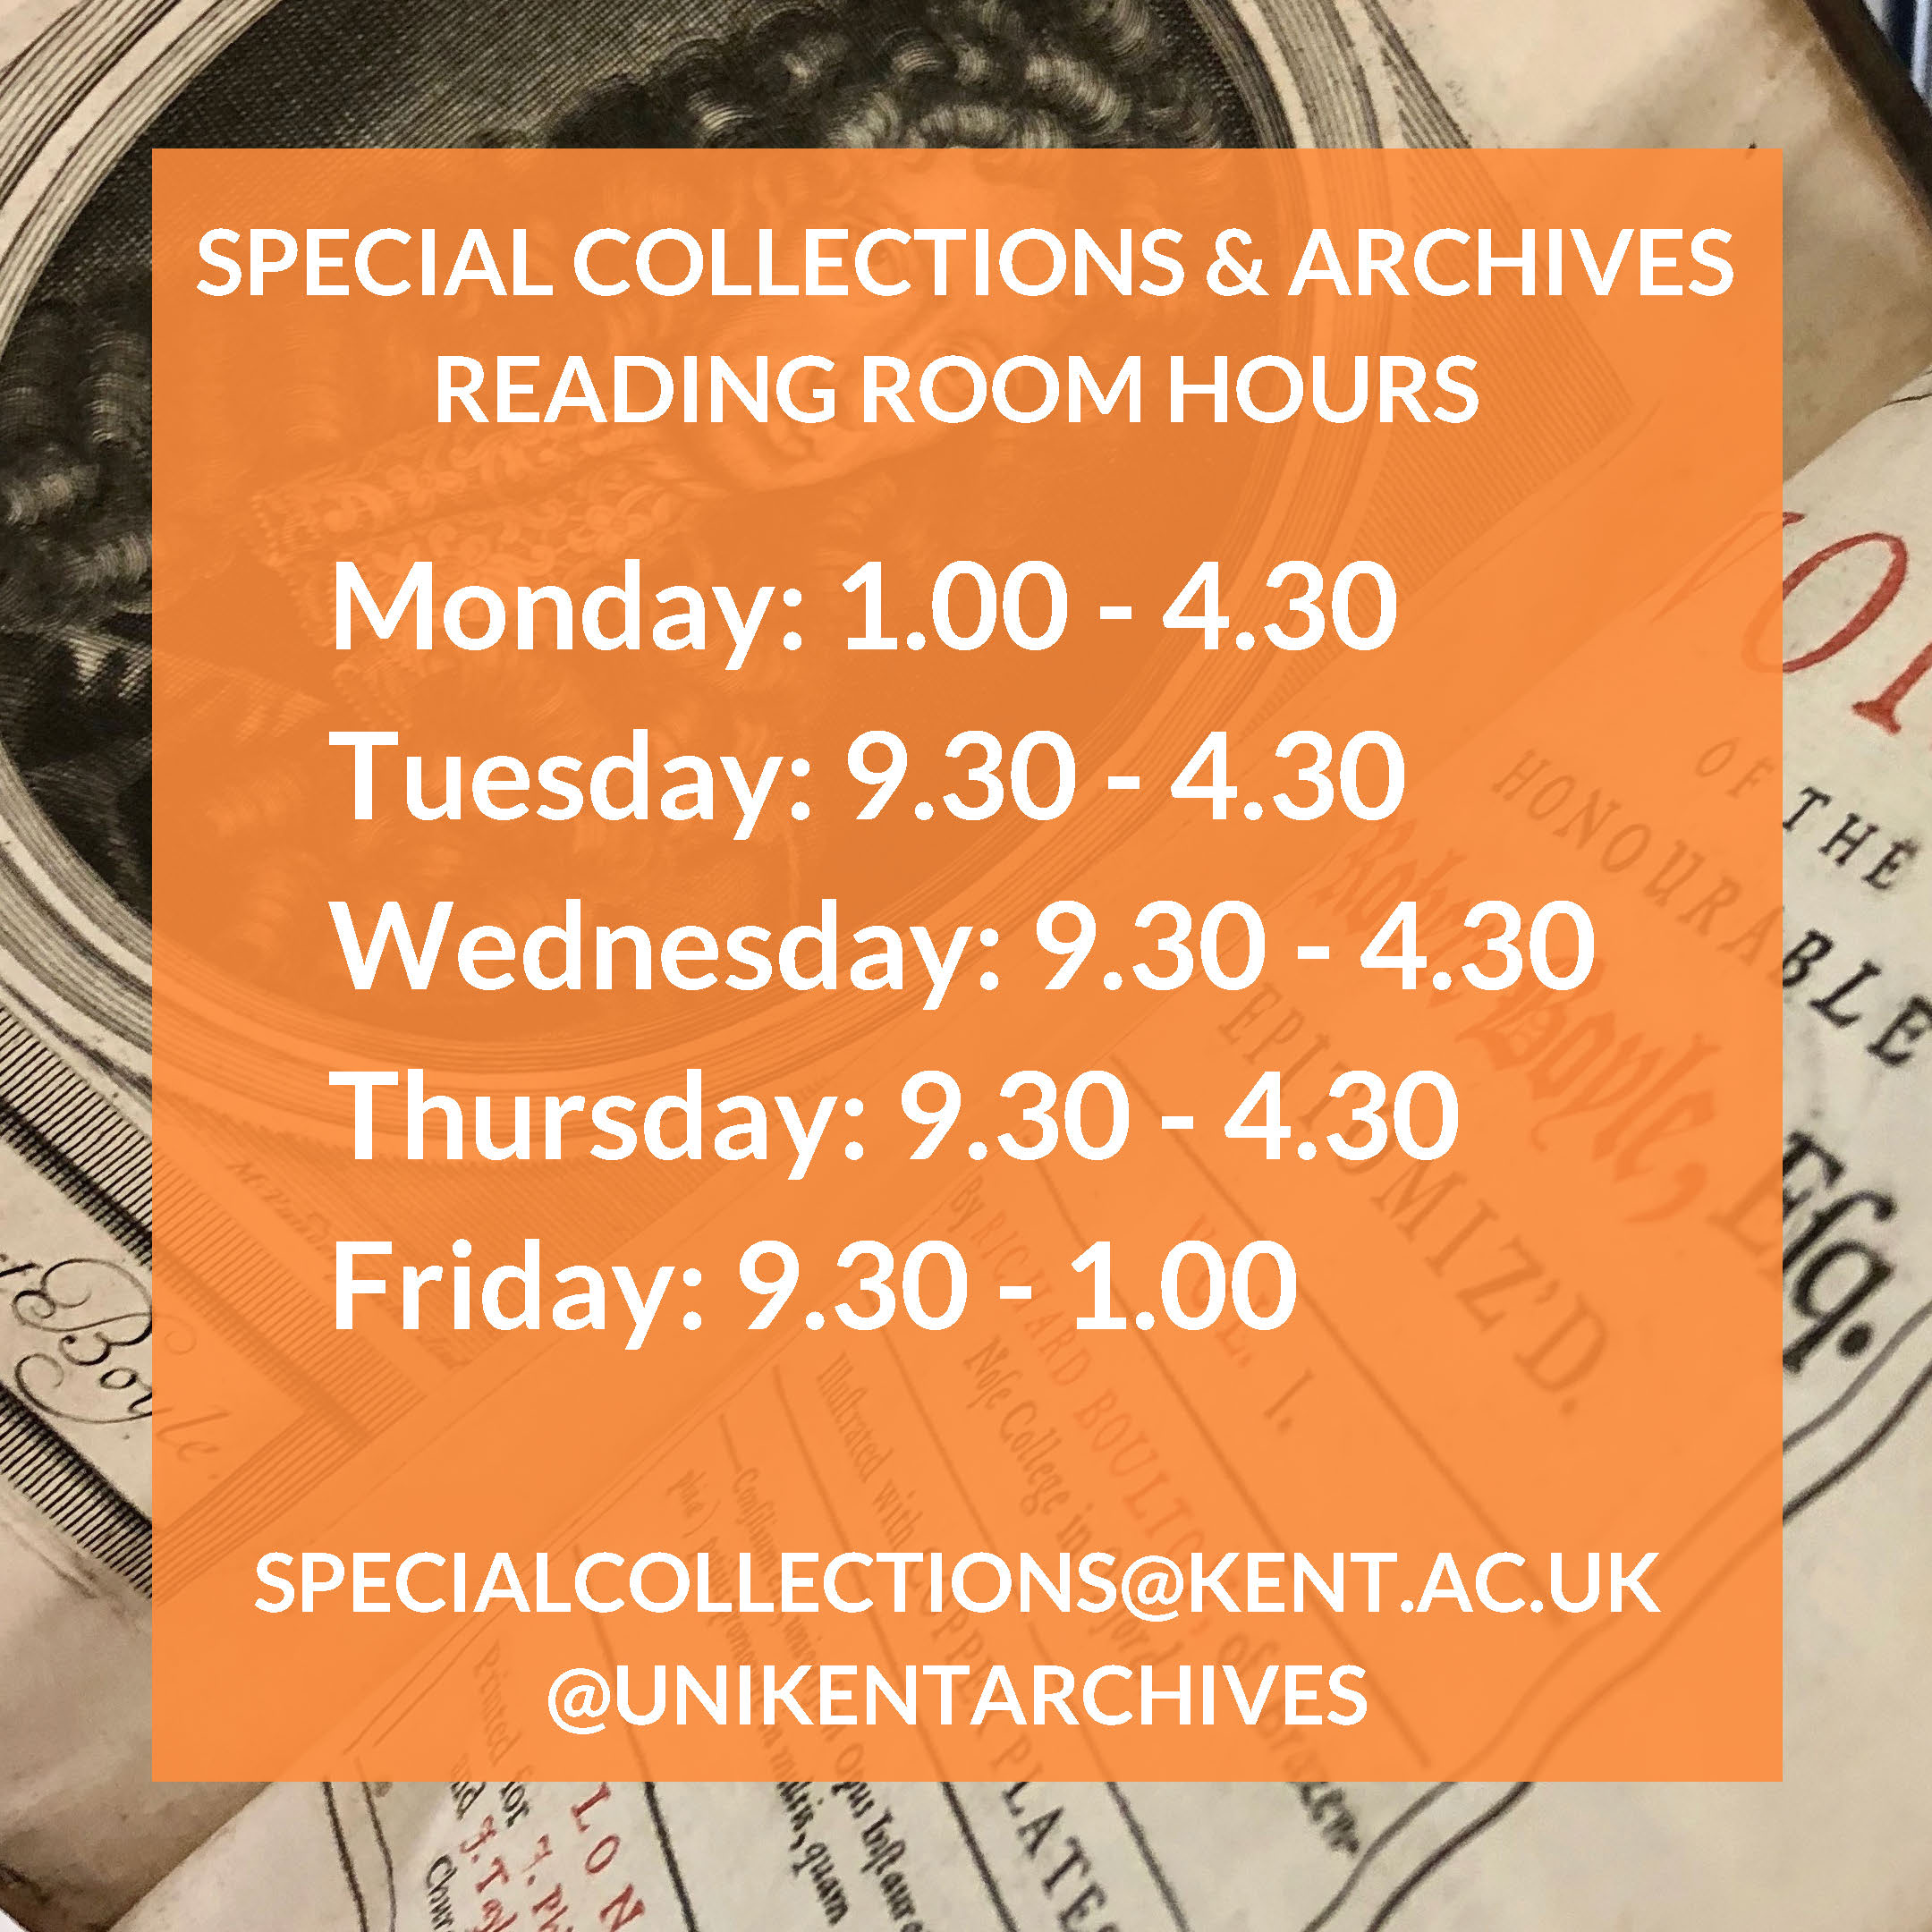 Graphic displaying details of the new opening hours for the Special Collections & Archives Reading Room, set against a background of a book from the Maddison Collection